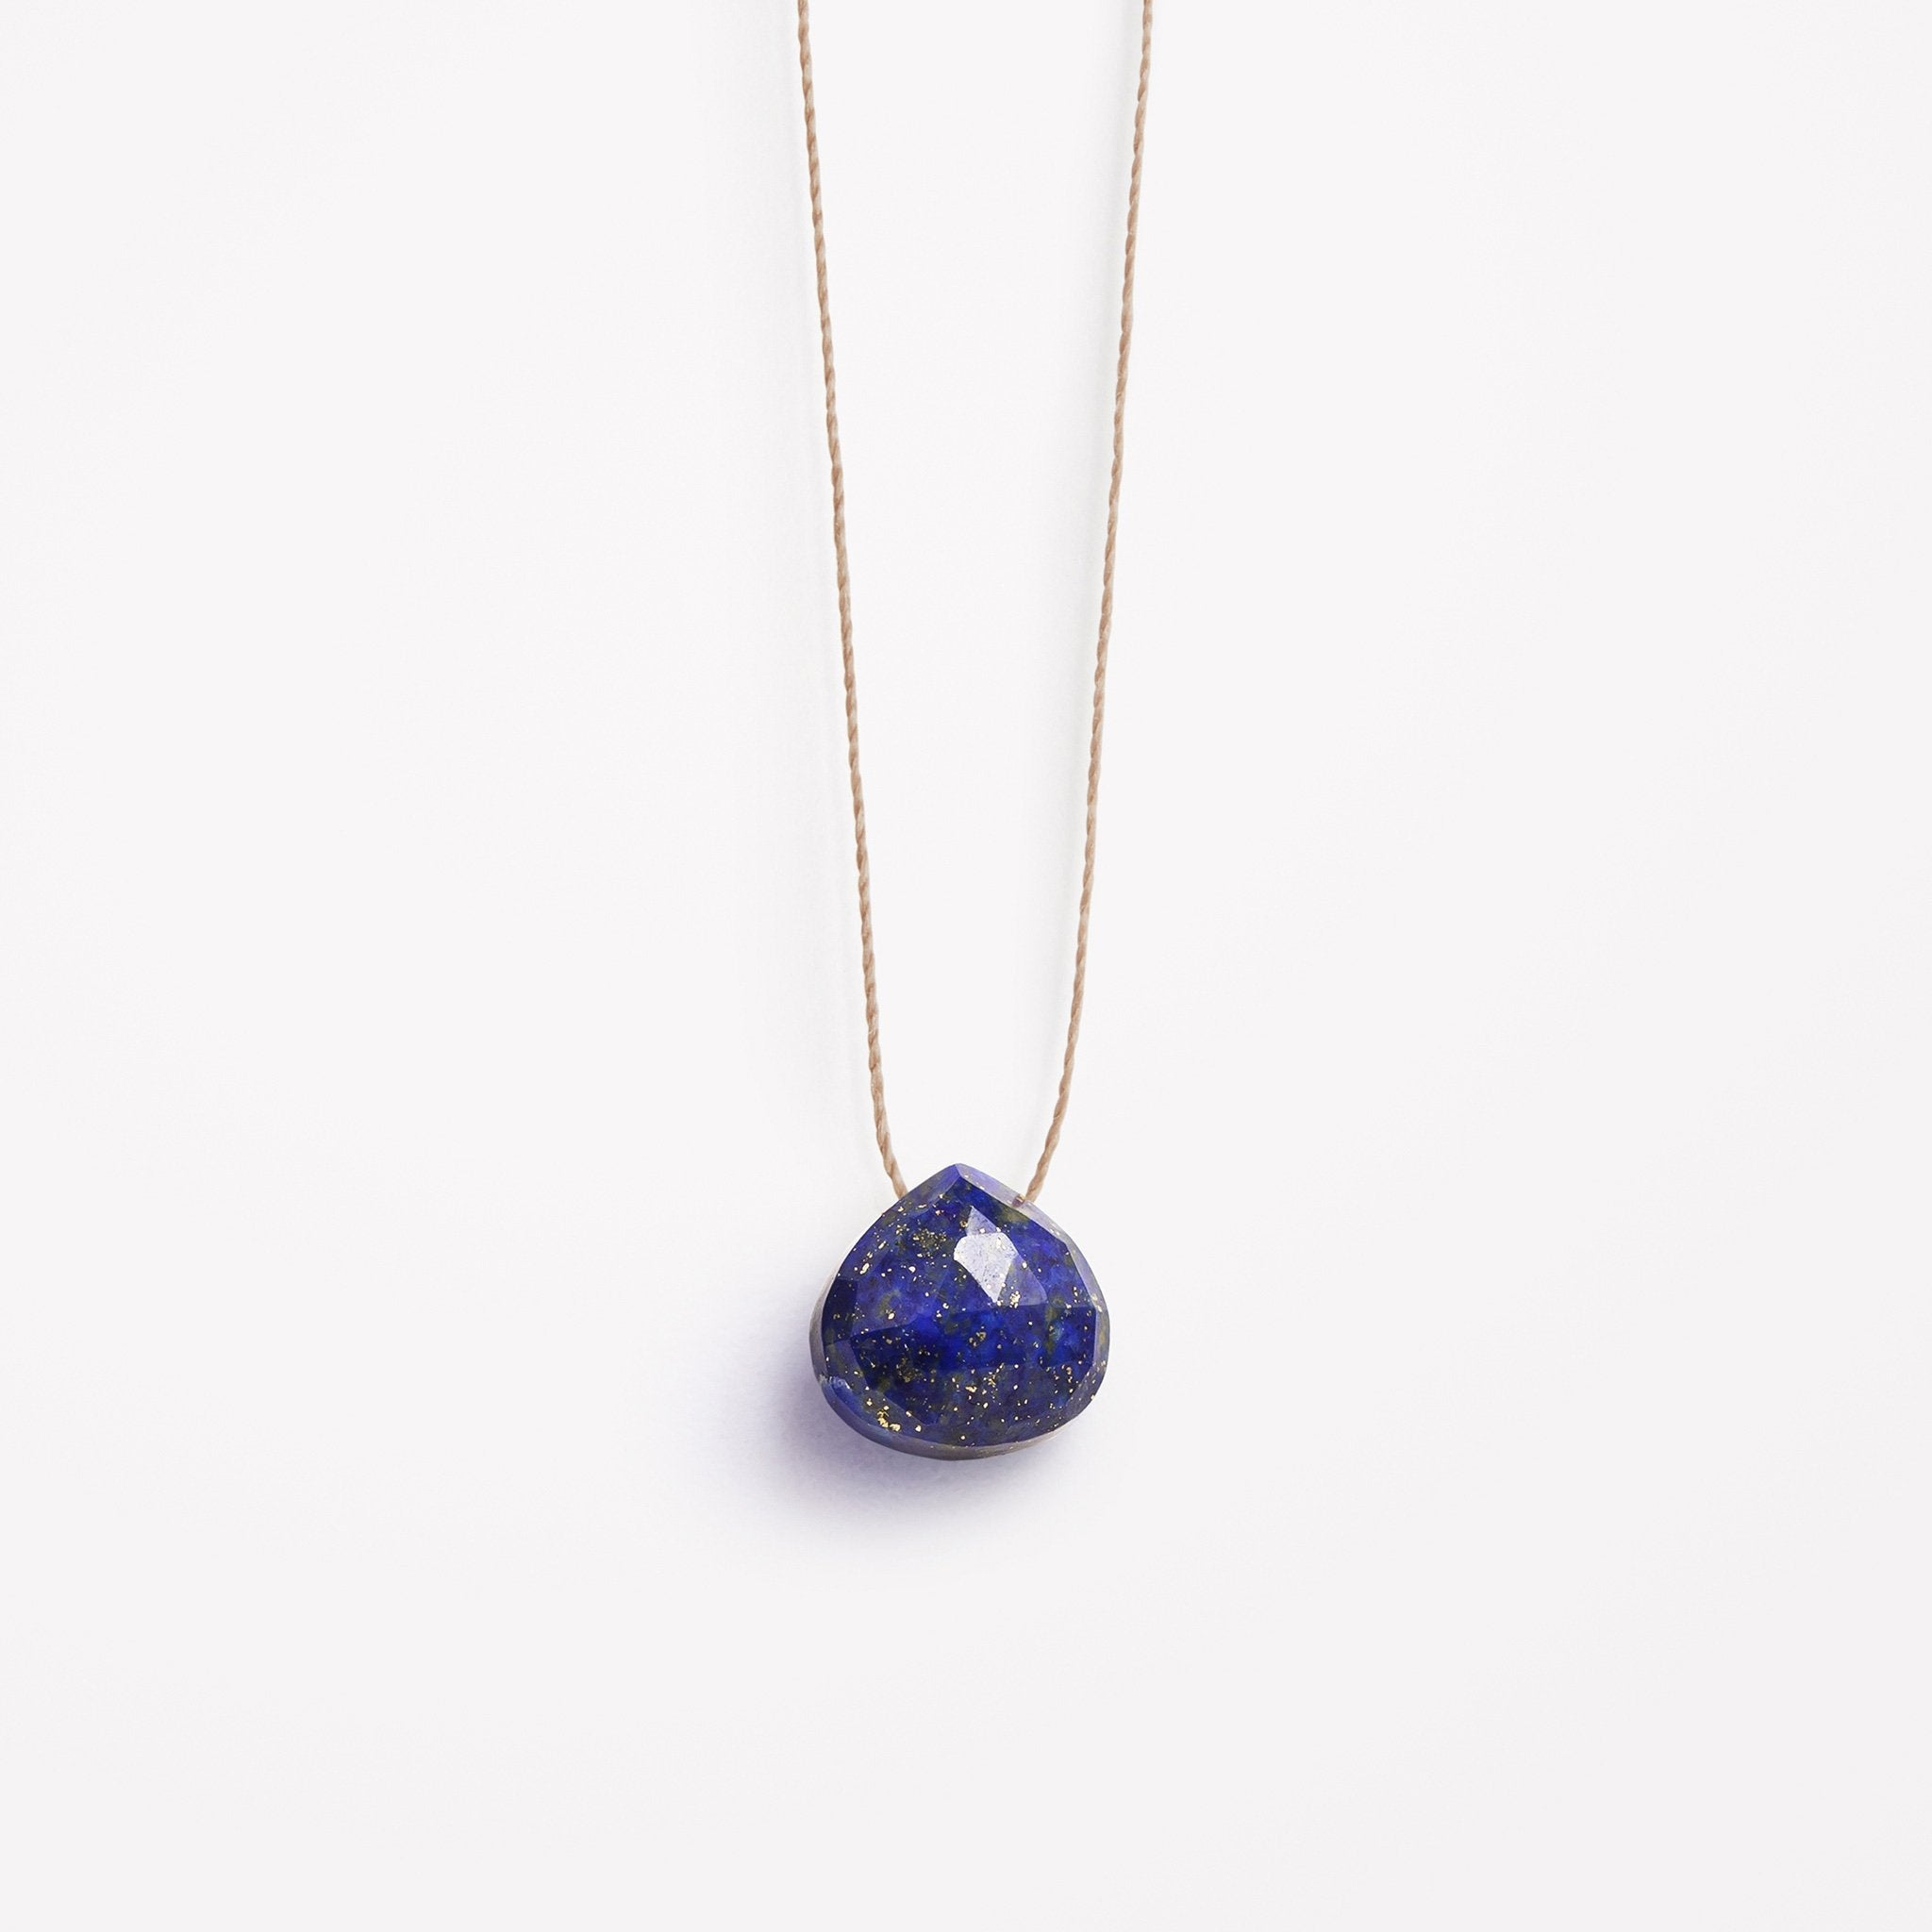 Wanderlust Life Ethically Handmade jewellery made in the UK. Minimalist gold and fine cord jewellery. third eye, lapis lazuli fine cord necklace